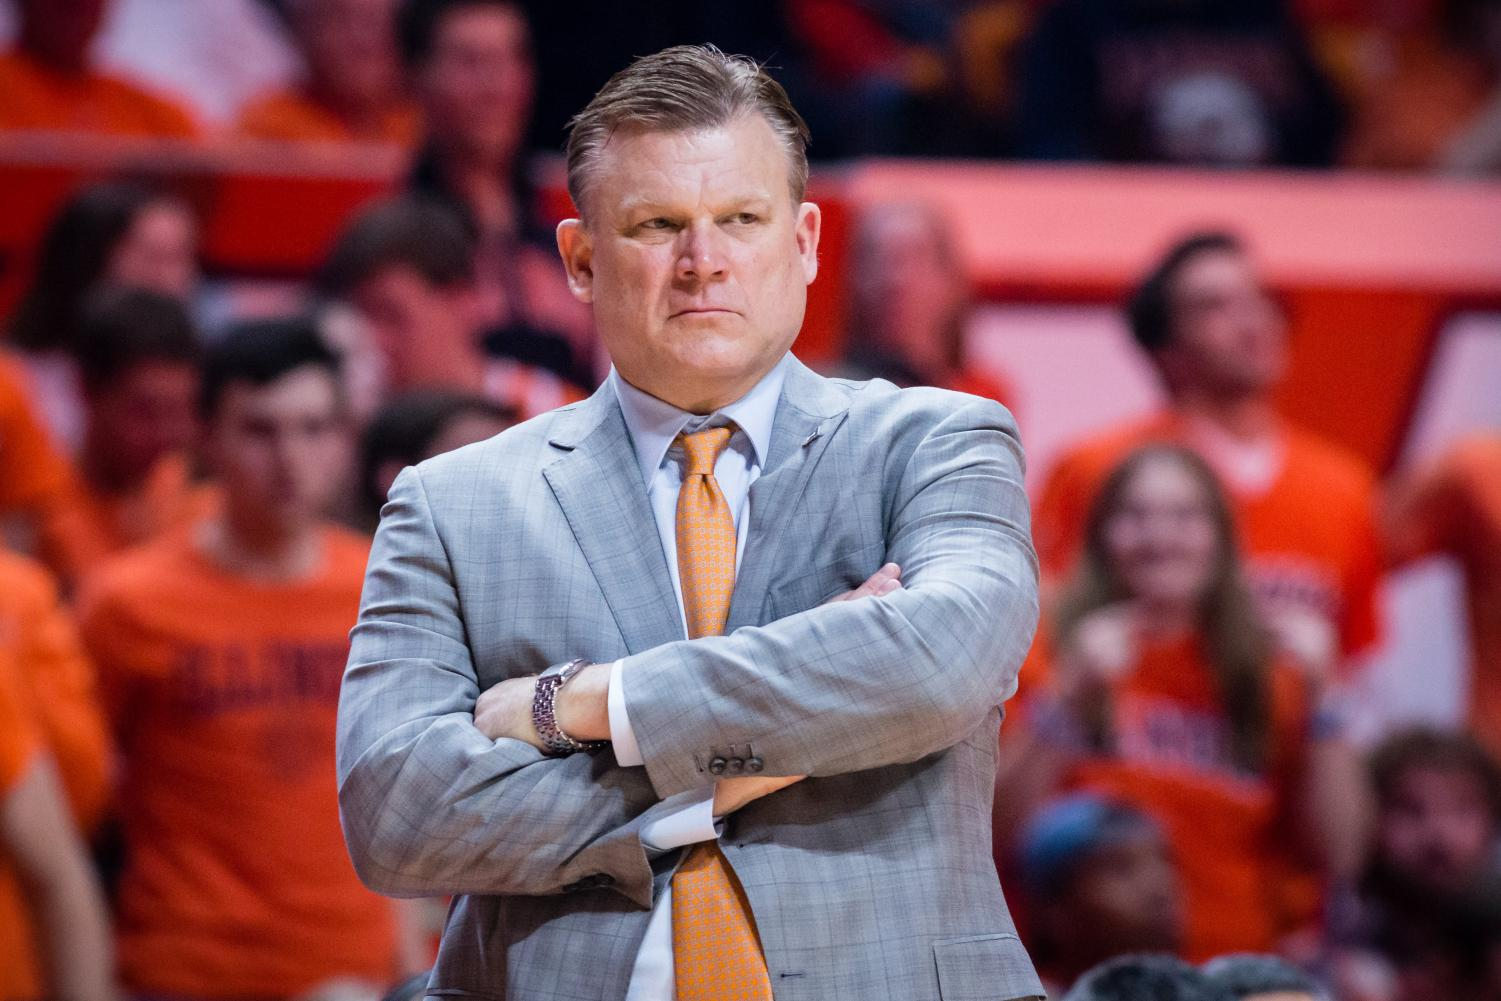 Illinois head coach Brad Underwood watches his team from the sideline during the game against Wisconsin at the State Farm Center on Feb. 8. Underwood and his team showed off their preparation in front of a crowd eager to get a look at the new team on Saturday at the Homecoming open practice.